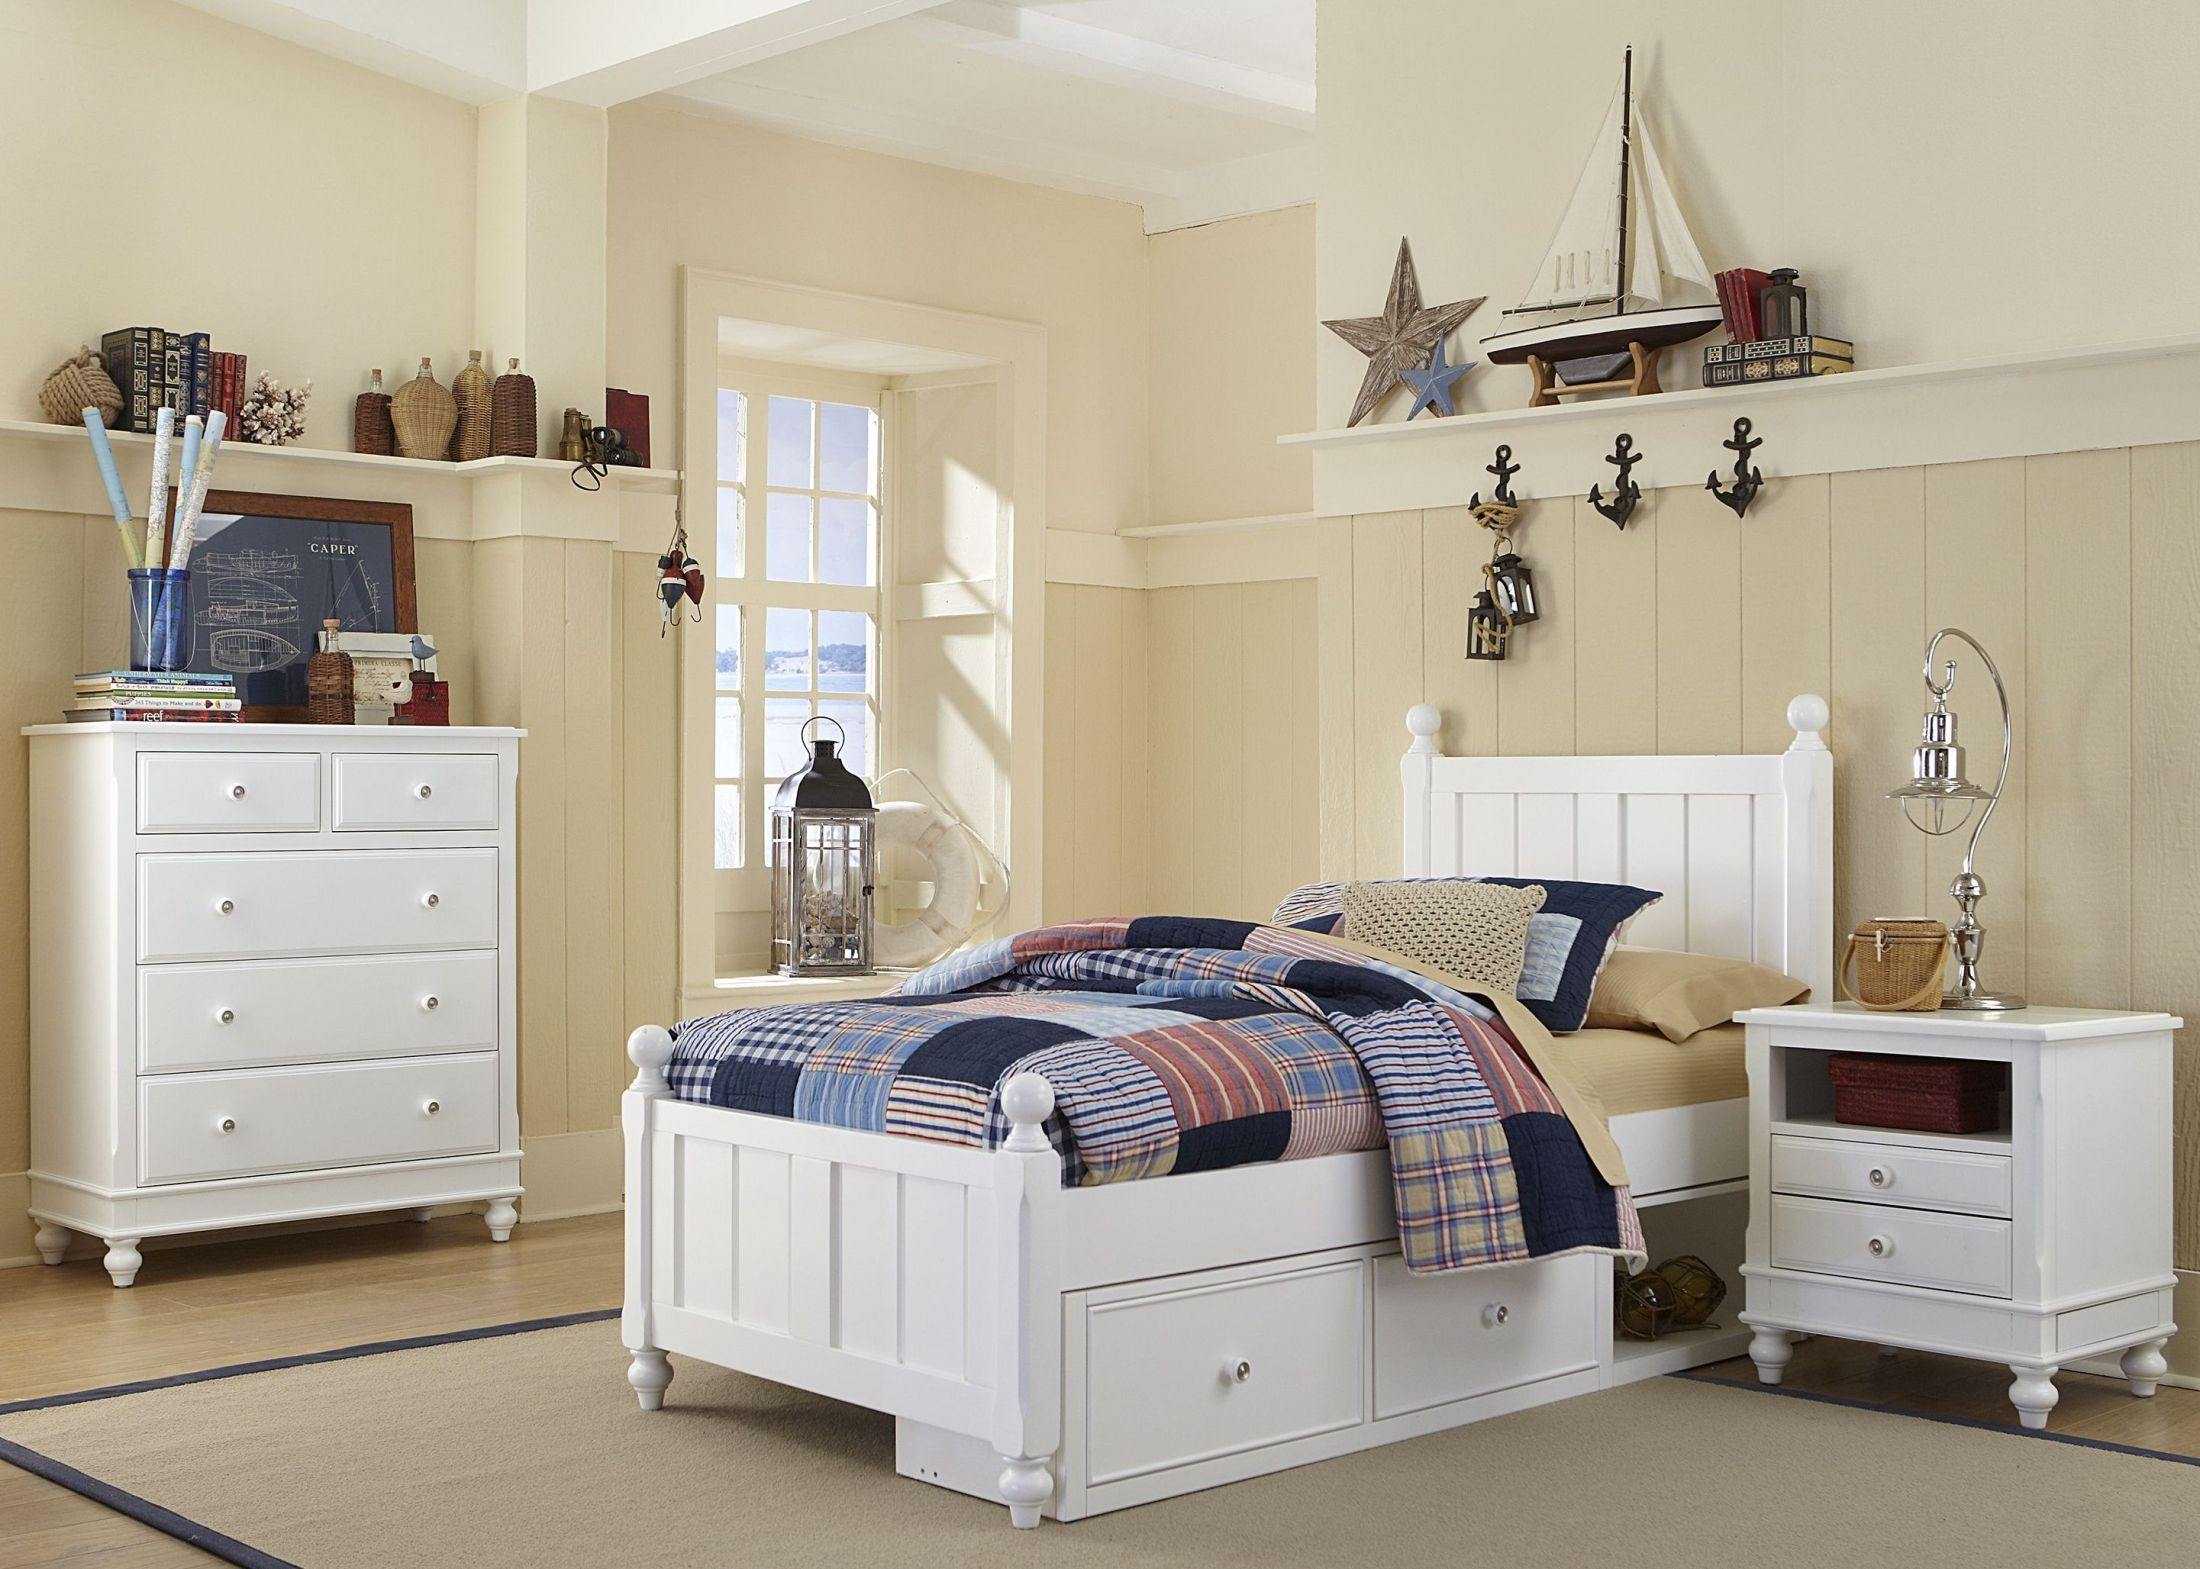 Lake house white kennedy youth panel bedroom set with storage from ne kids coleman furniture for Youth storage bedroom furniture